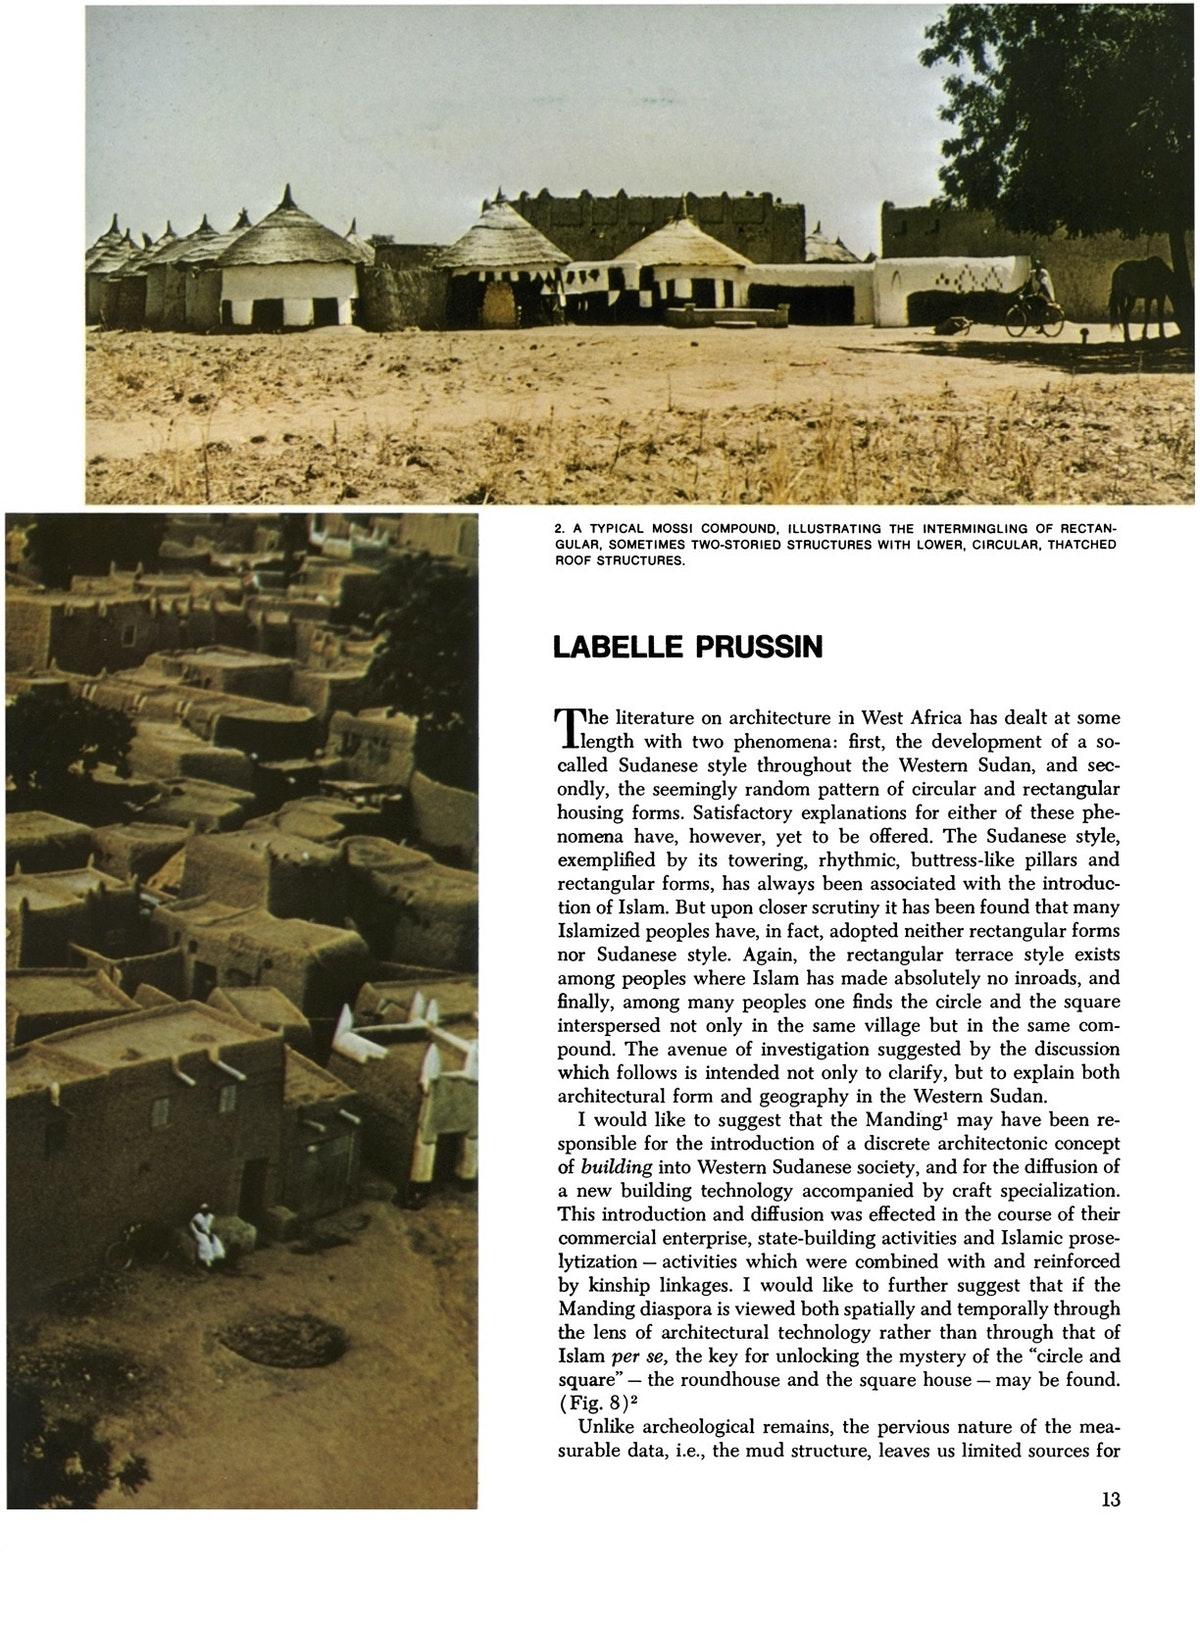 """Pages from Labelle Prussin, """"Sudanese Architecture and the Manding"""""""